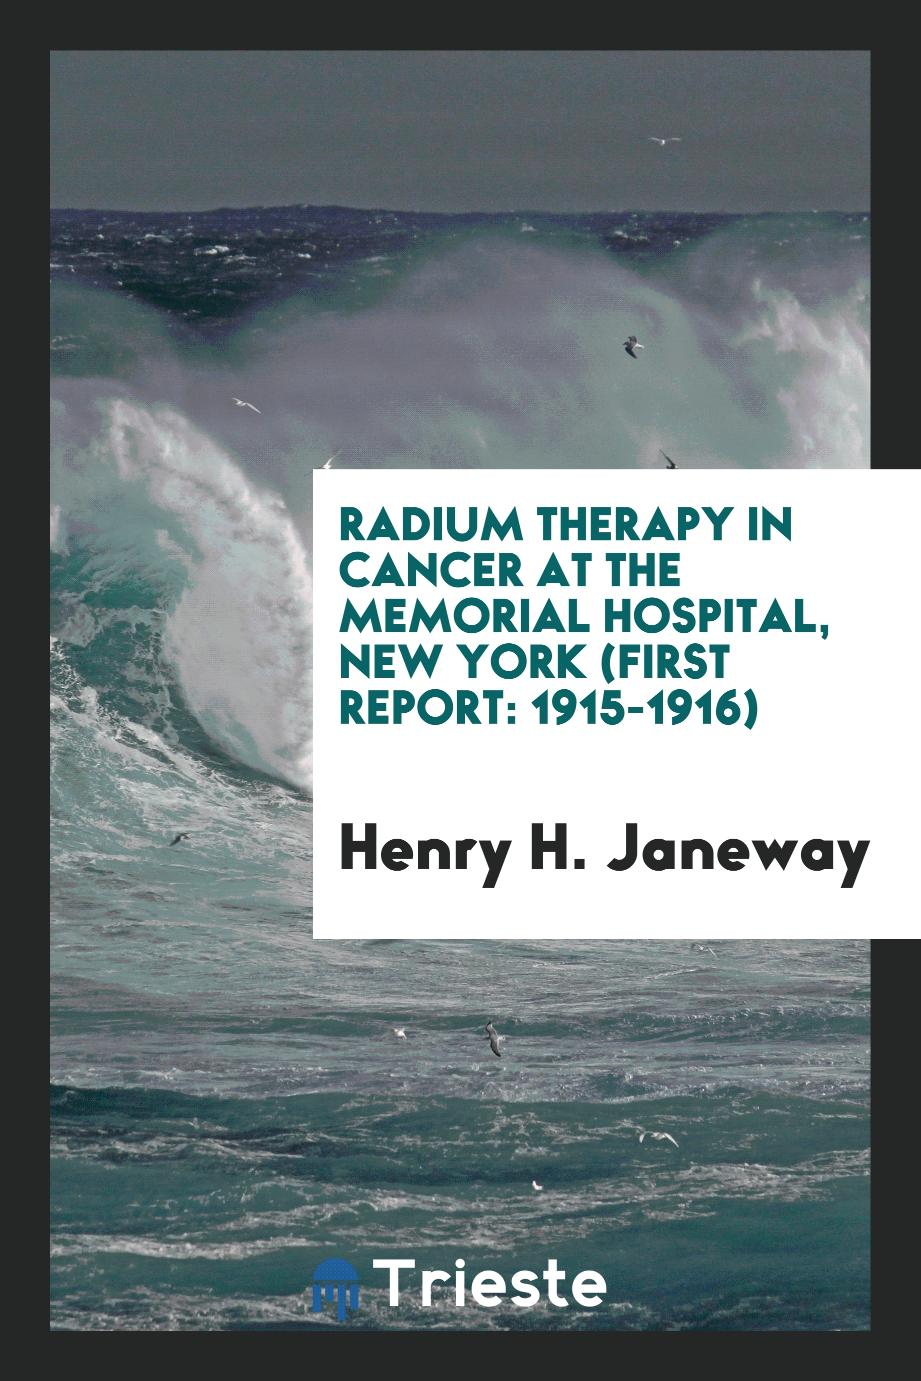 Radium therapy in cancer at the Memorial Hospital, New York (First report: 1915-1916)